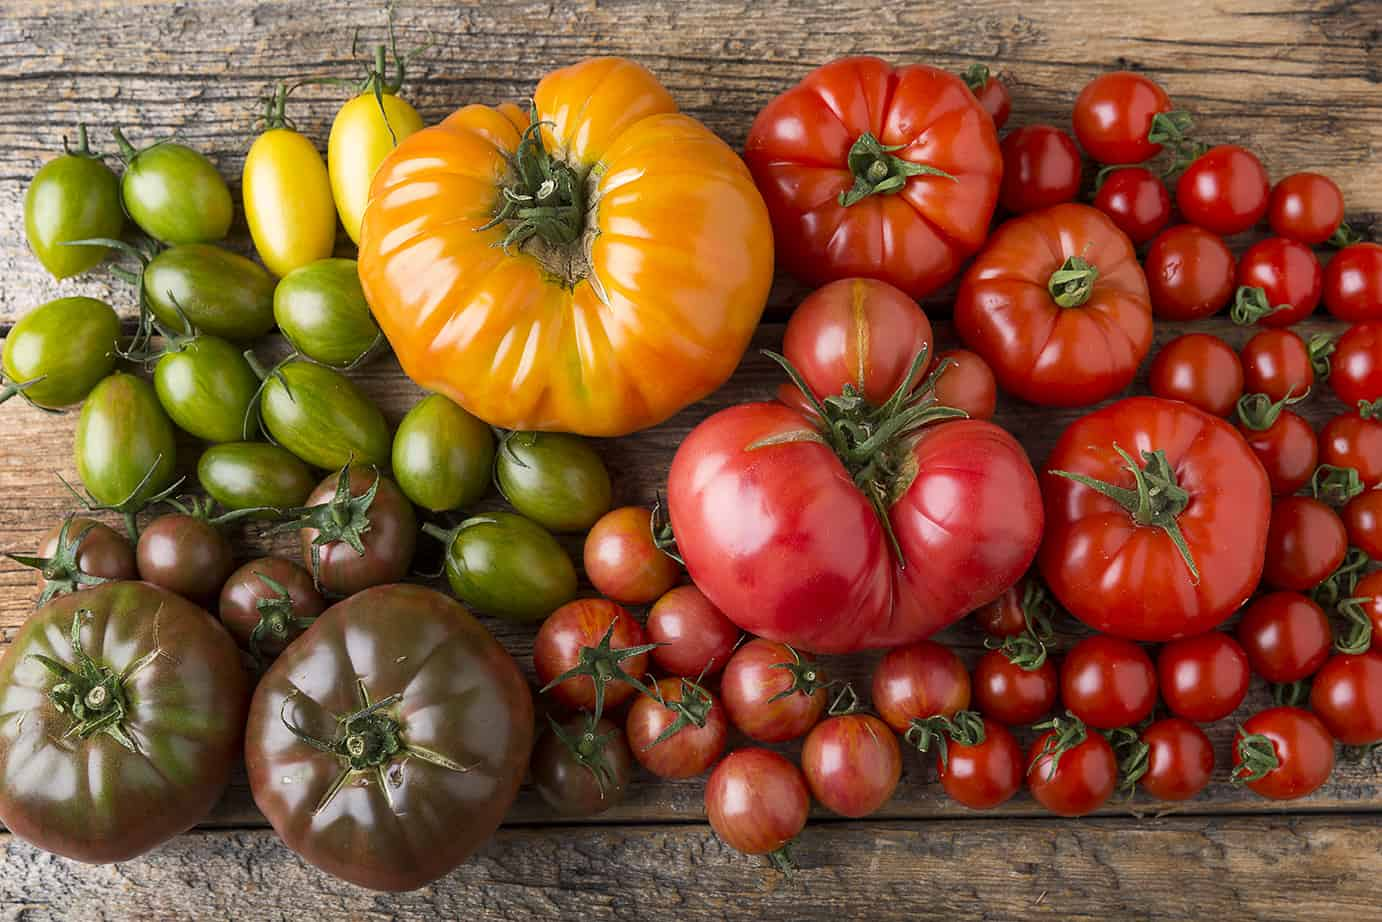 Tomato Growing Tips: 10 Secrets to a Successful Tomato Crop